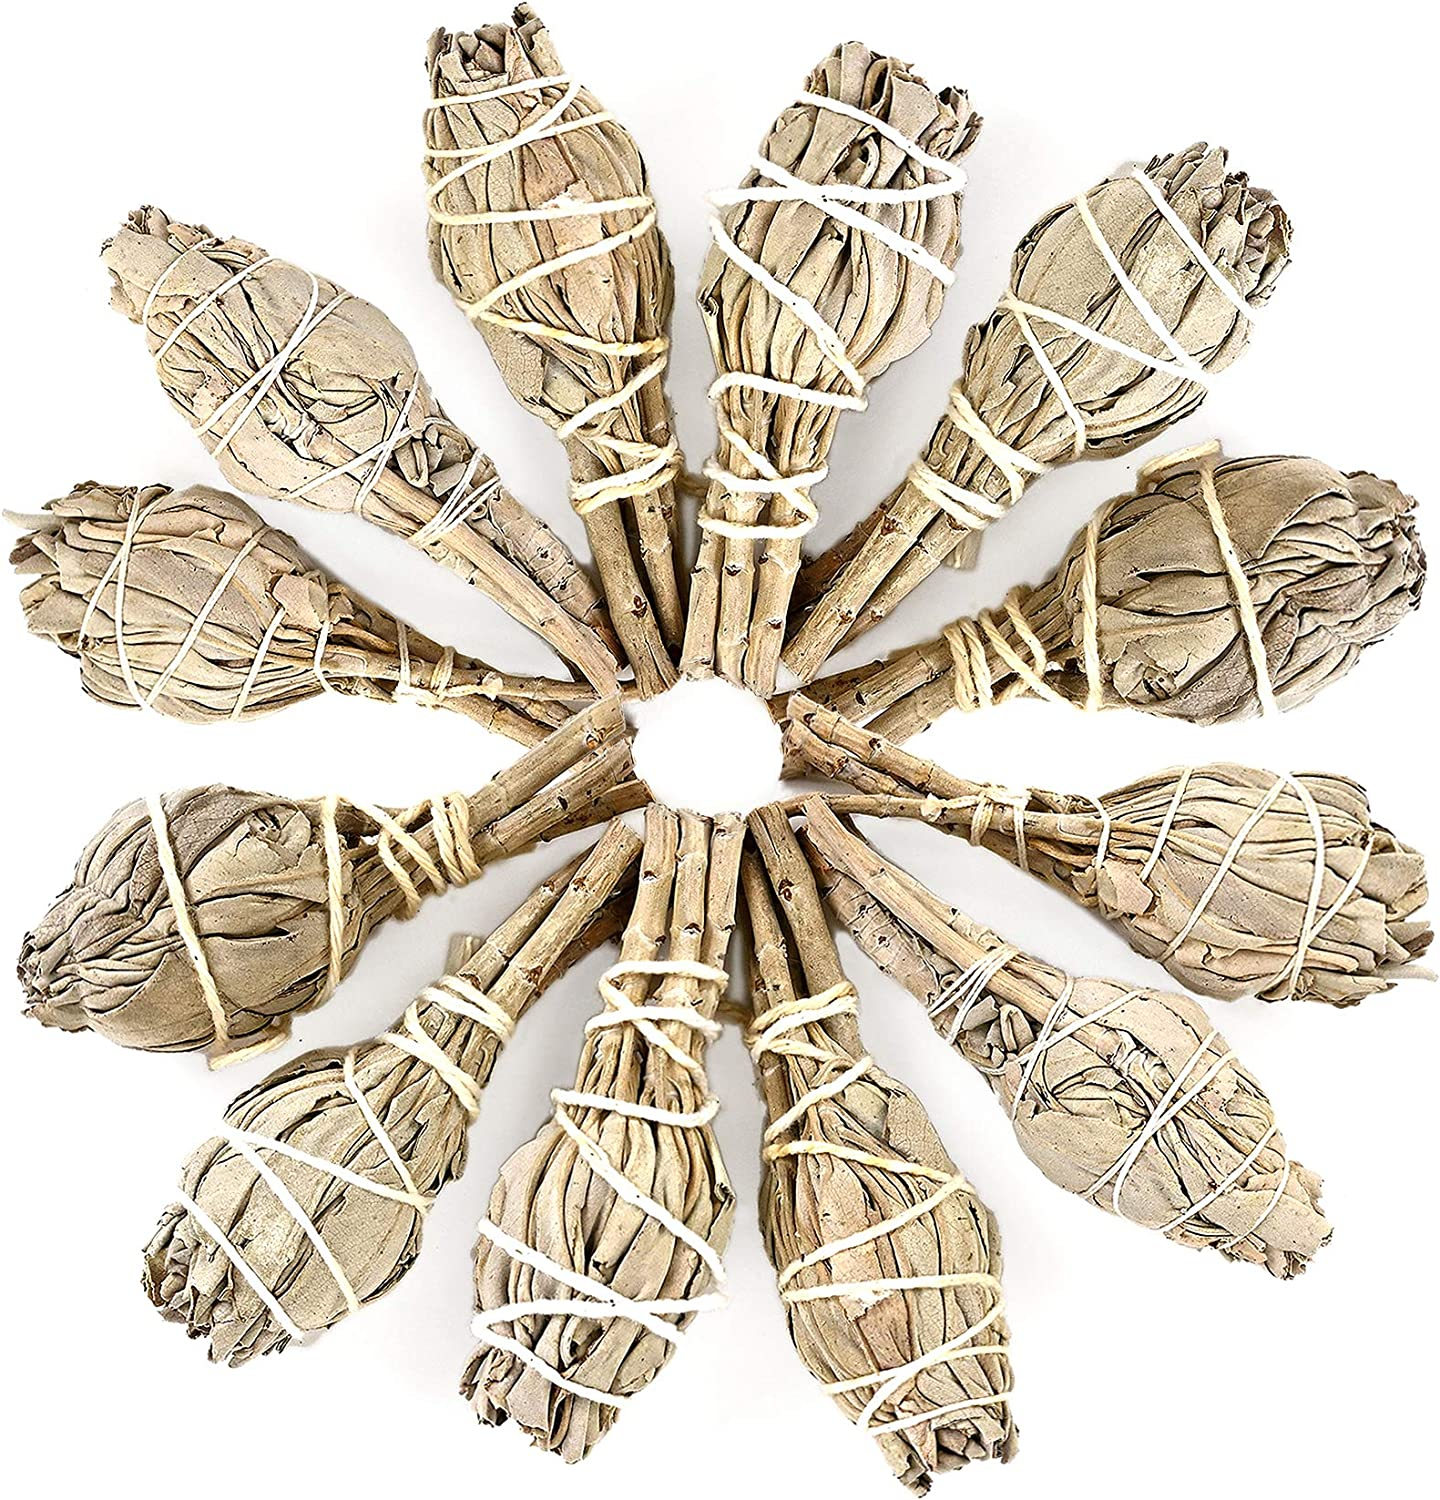 Premium California White Sage 4 Inch Smudge Sticks - Torch Wands Home Cleansing, Fragrance, Meditation, Yoga, Blessing, Smudging Rituals, New Home (12 Pack)